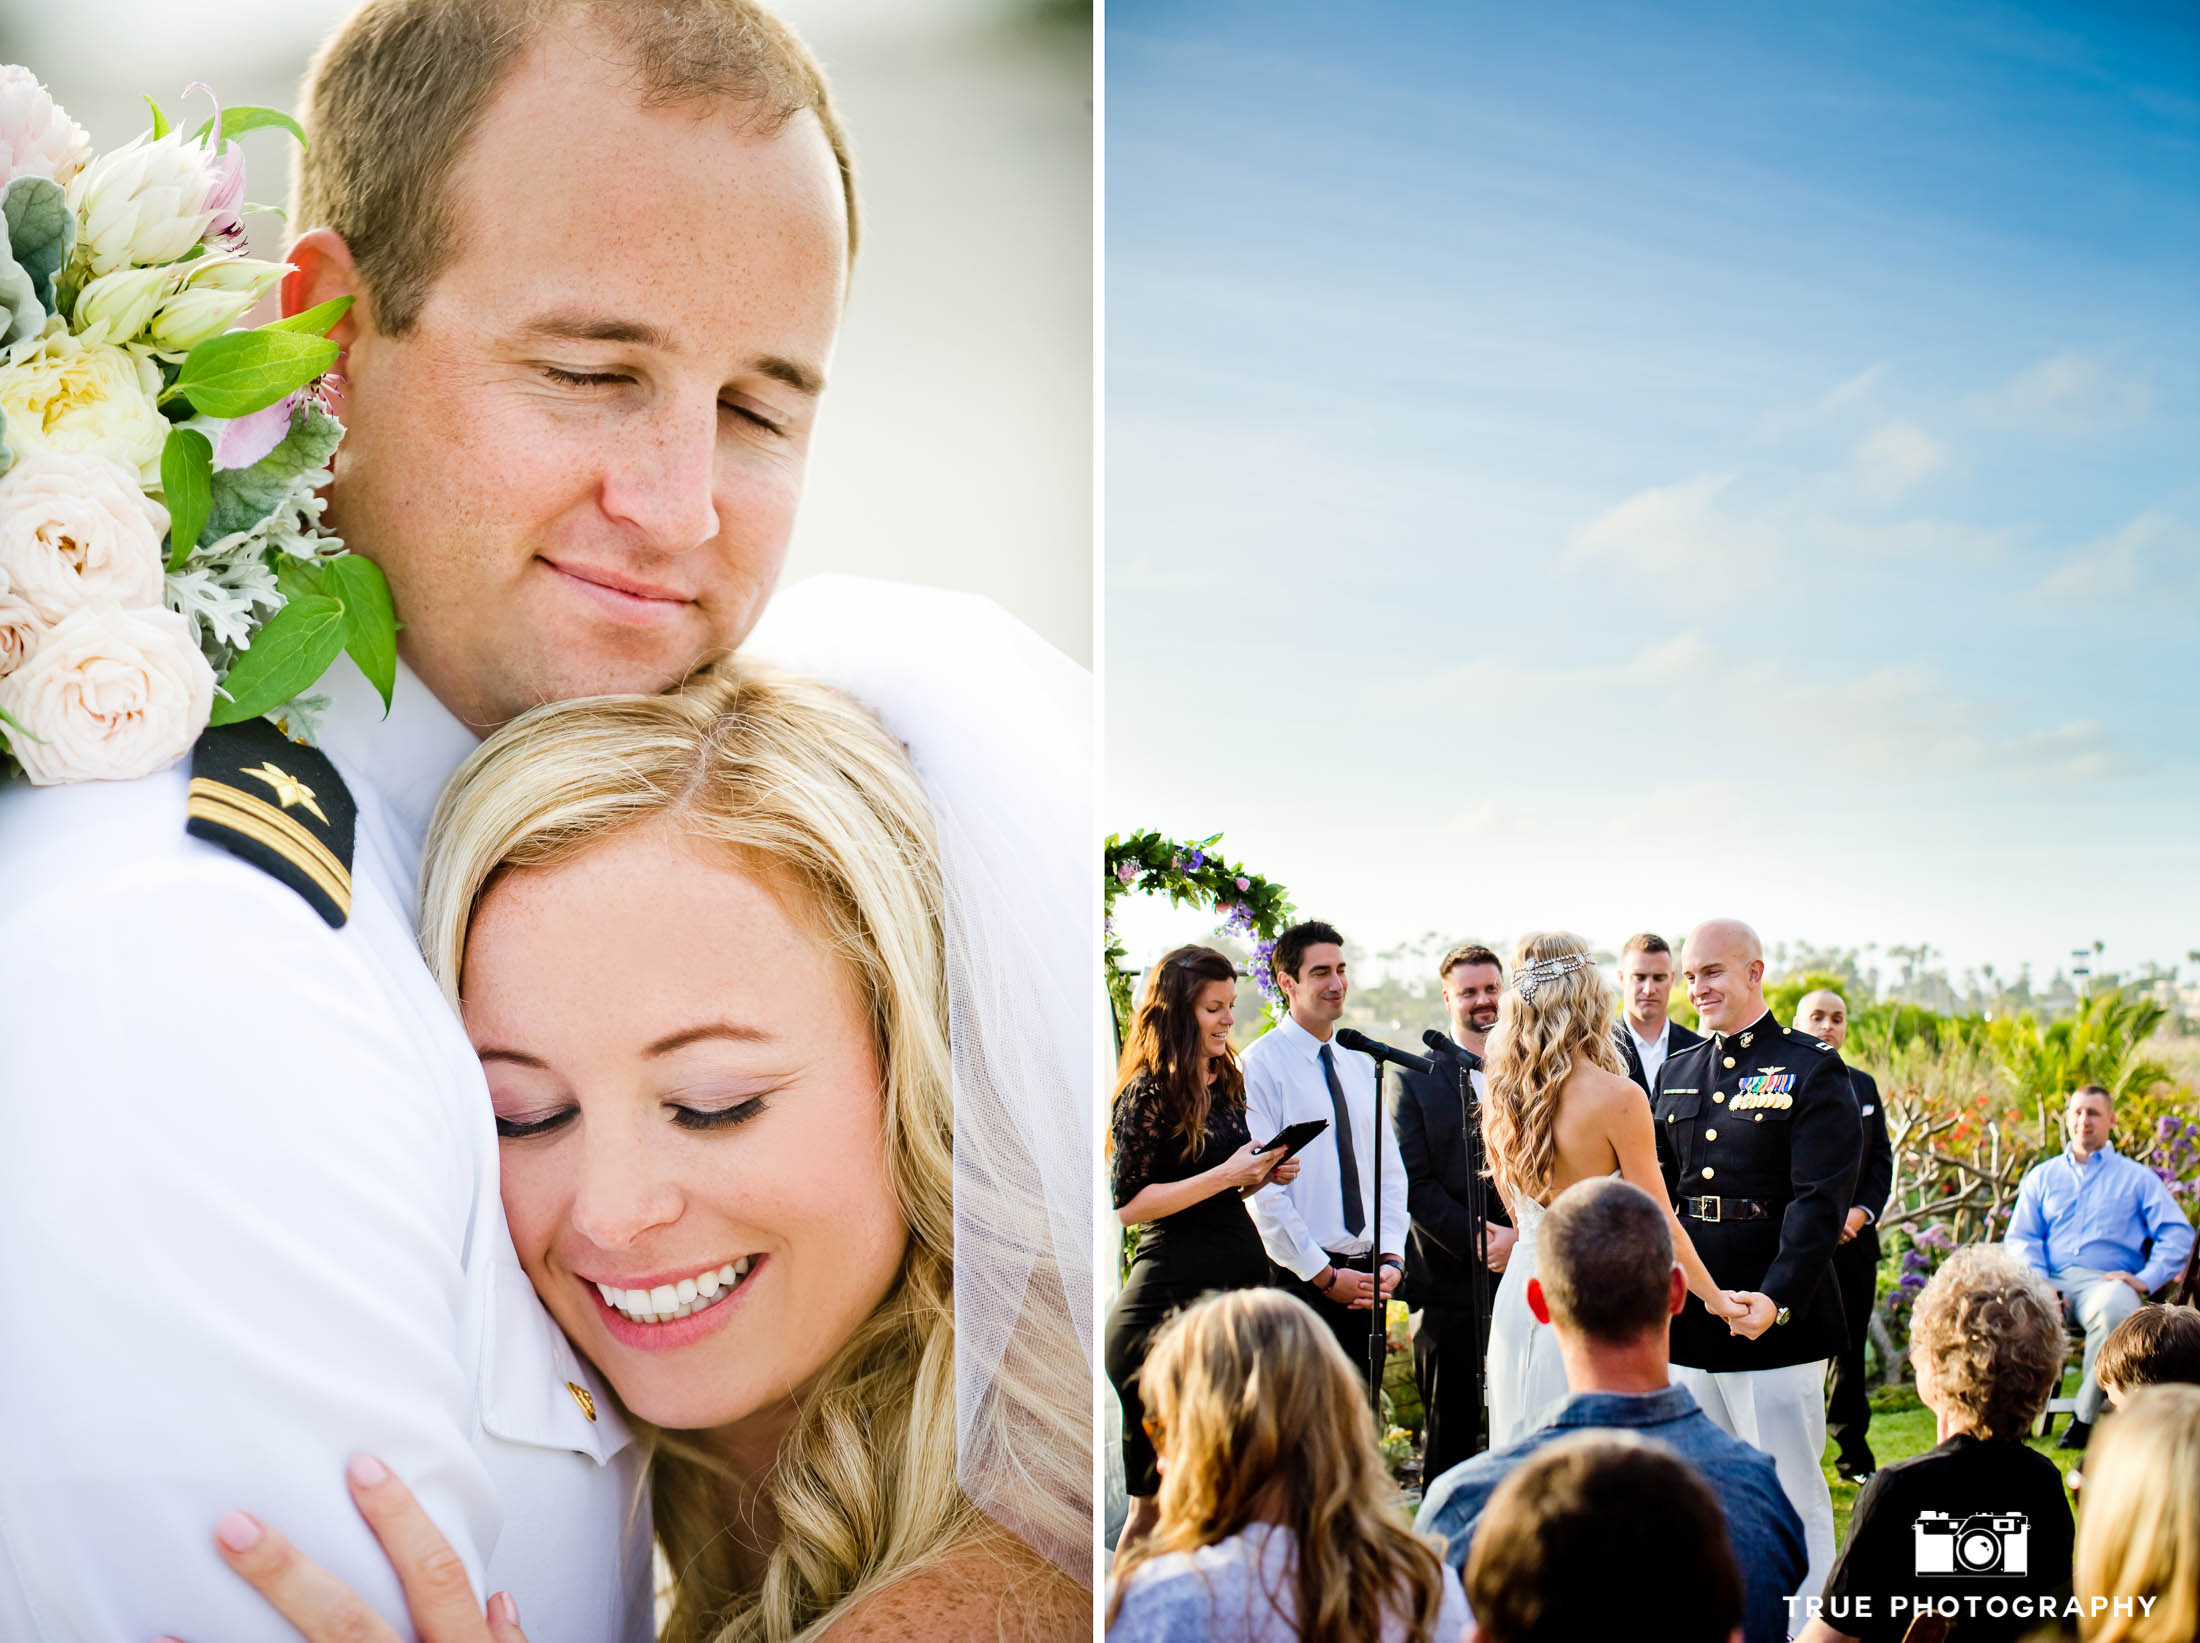 Military Wedding Couples enjoy intimate moments during wedding day ceremony in San Diego